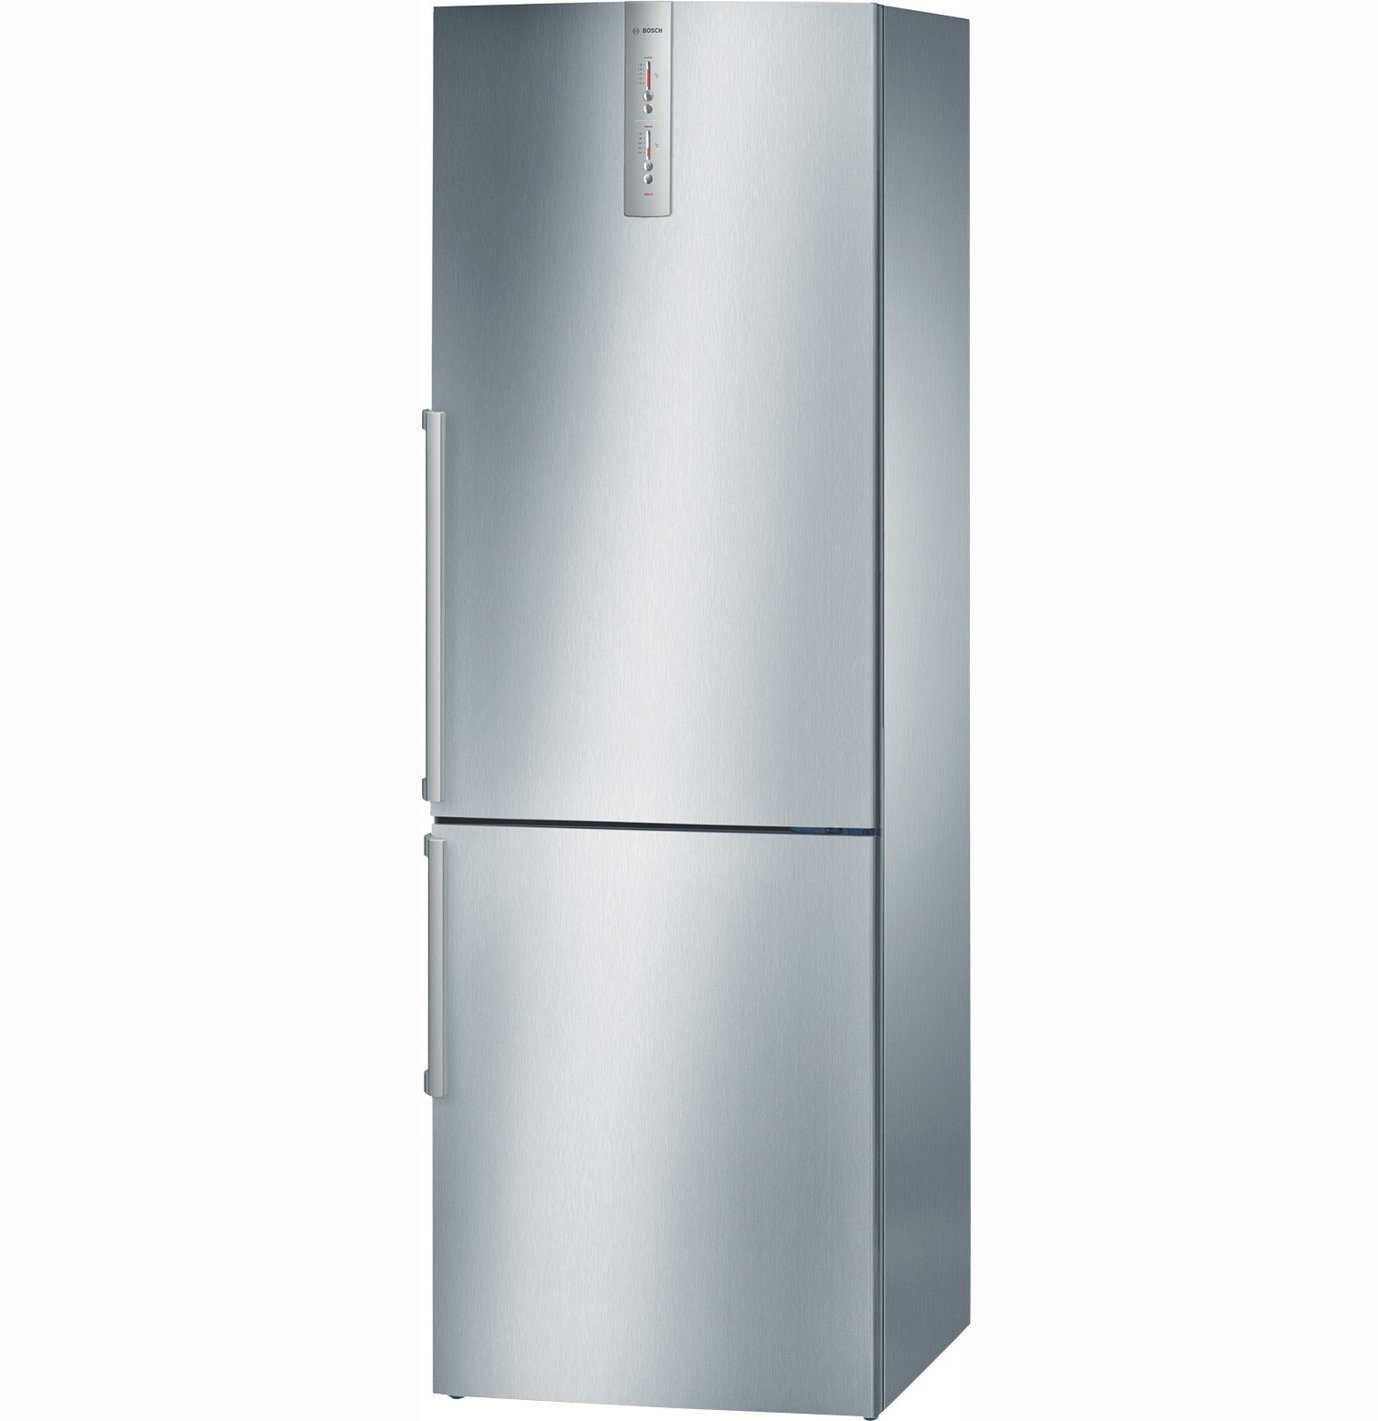 Bosch KGN36H70 Independiente 289L A+ Acero inoxidable nevera y ...